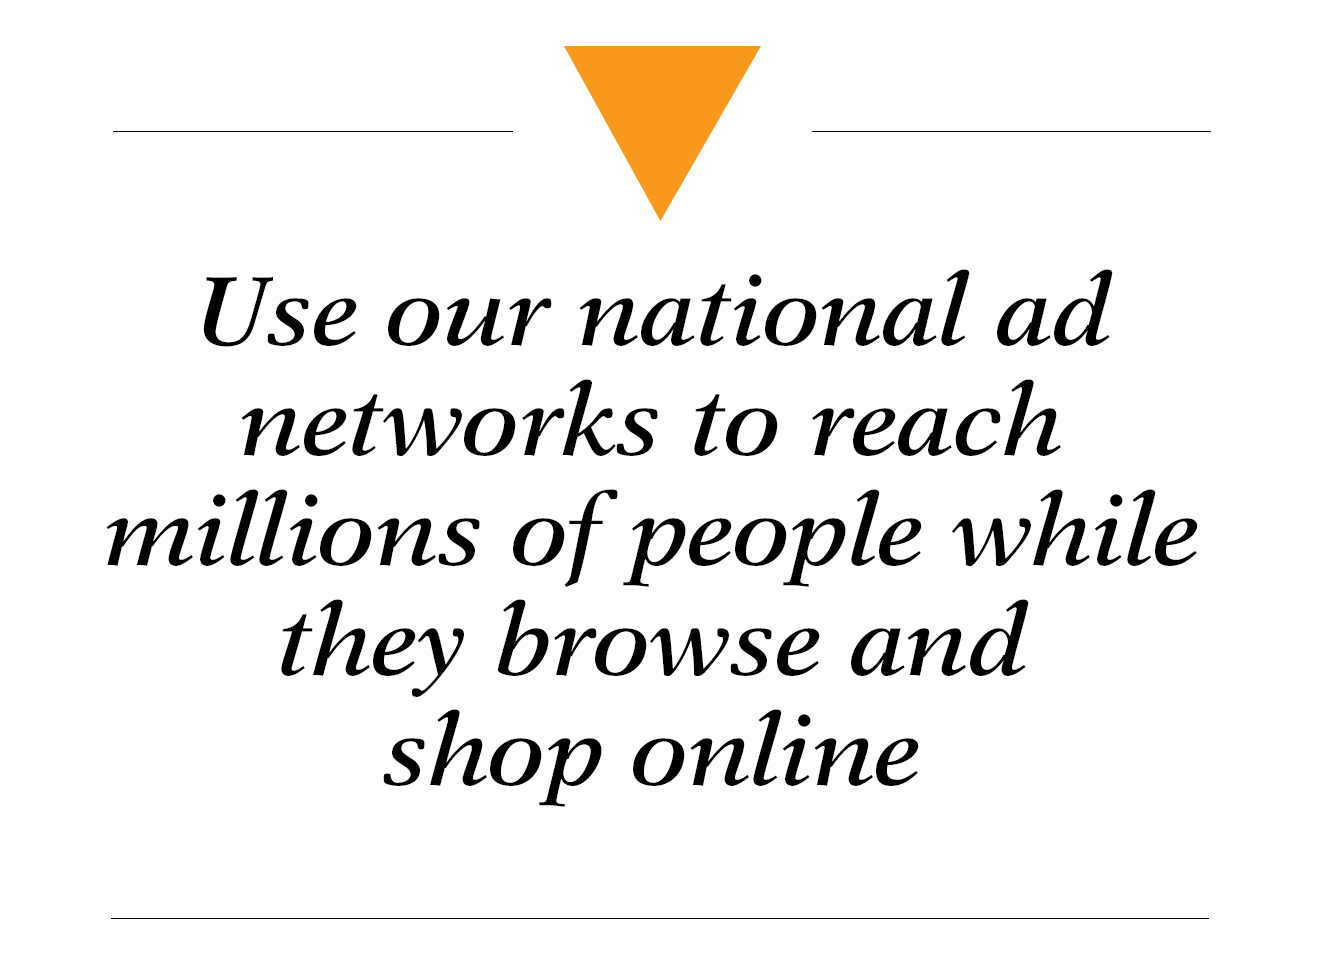 Use our national ad networks to reach millions of people while they browse and shop online - online display advertising